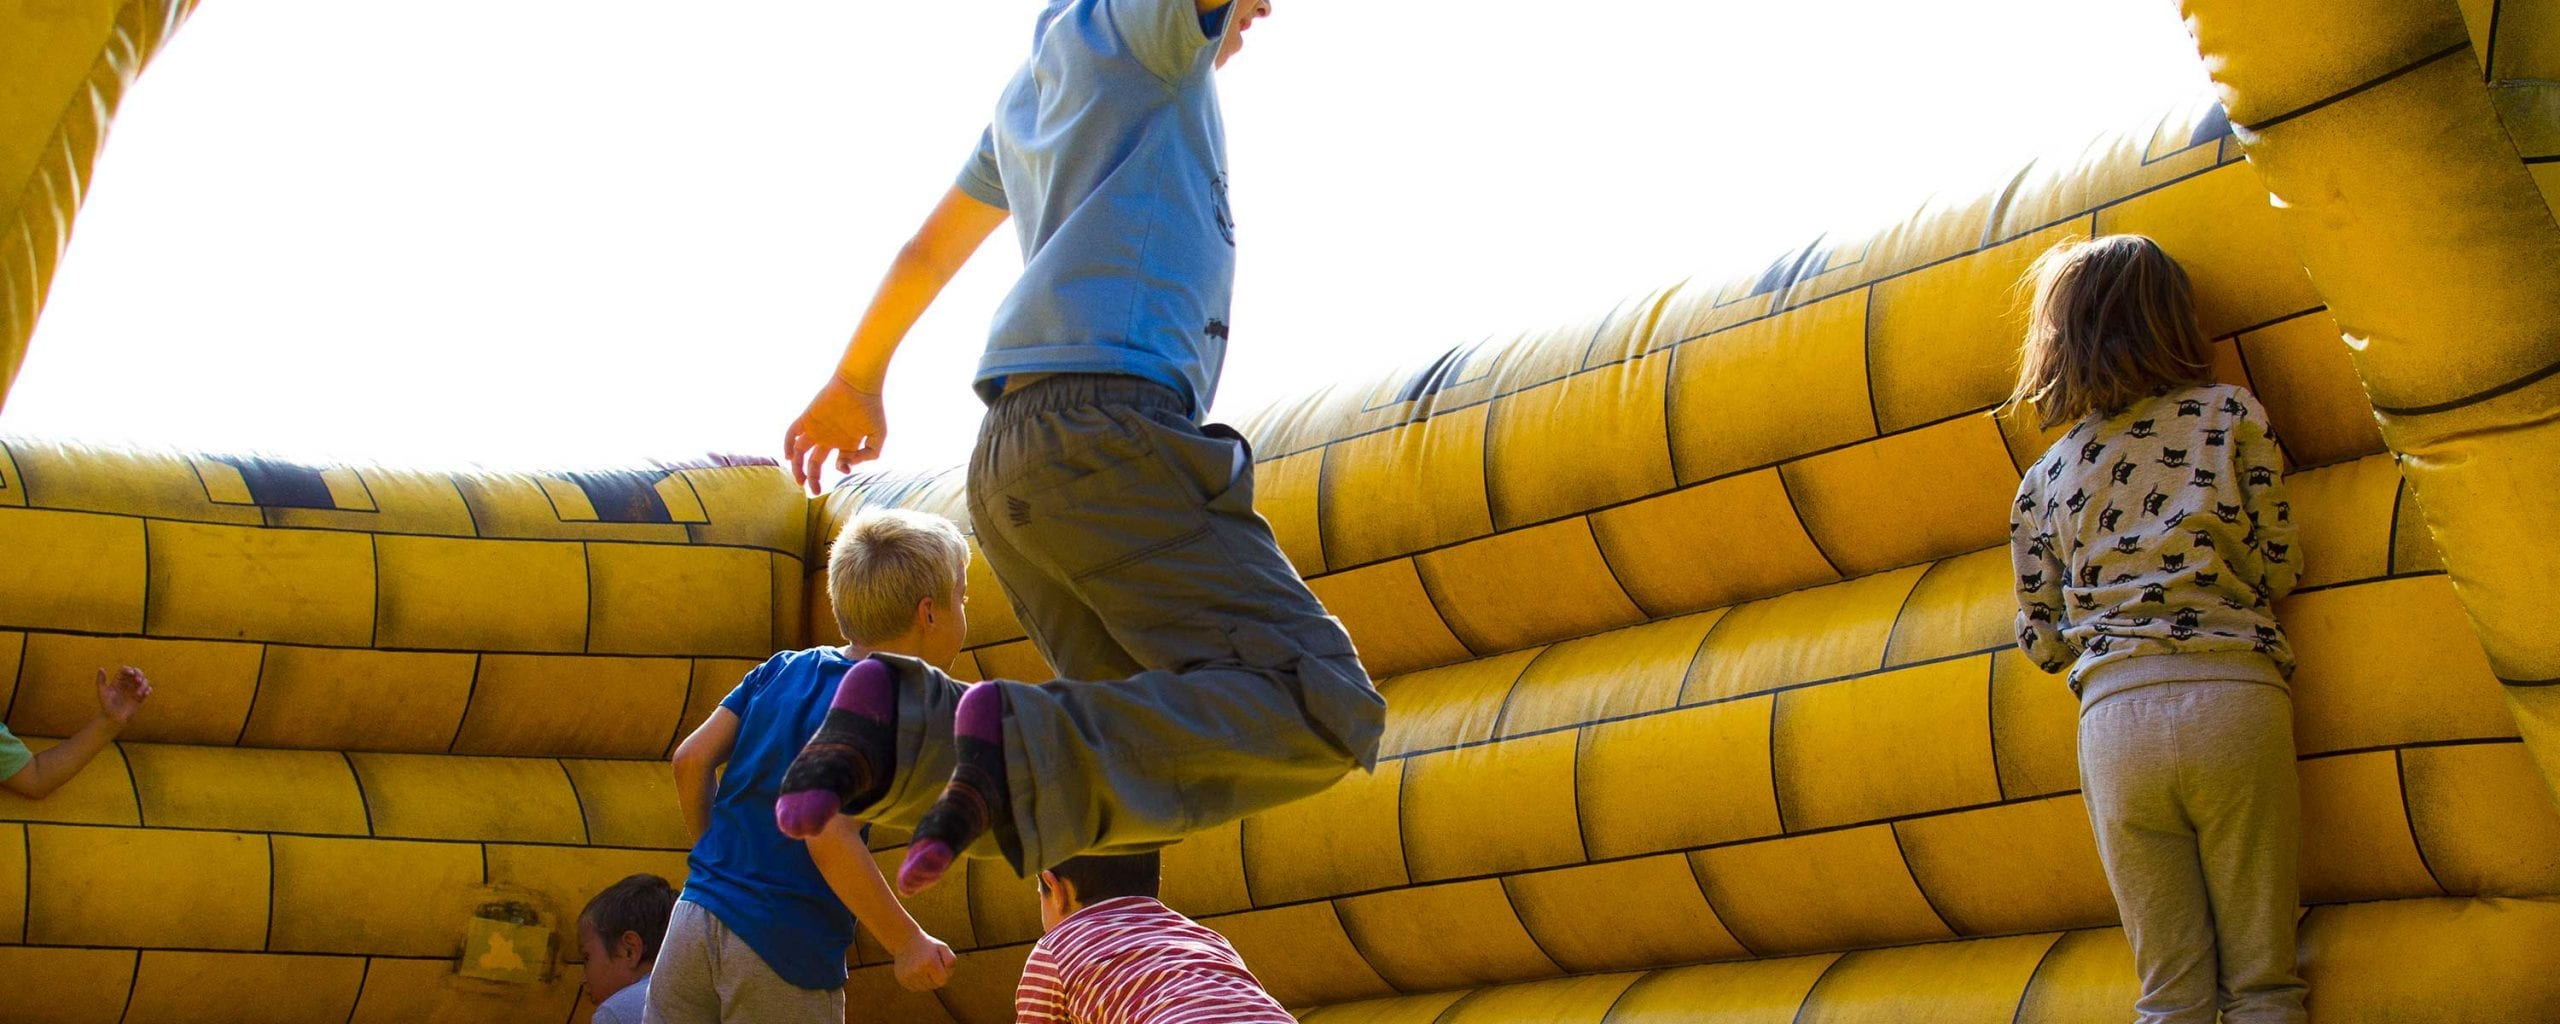 kids having fun at an event on an inflatable moon bounce bounce house